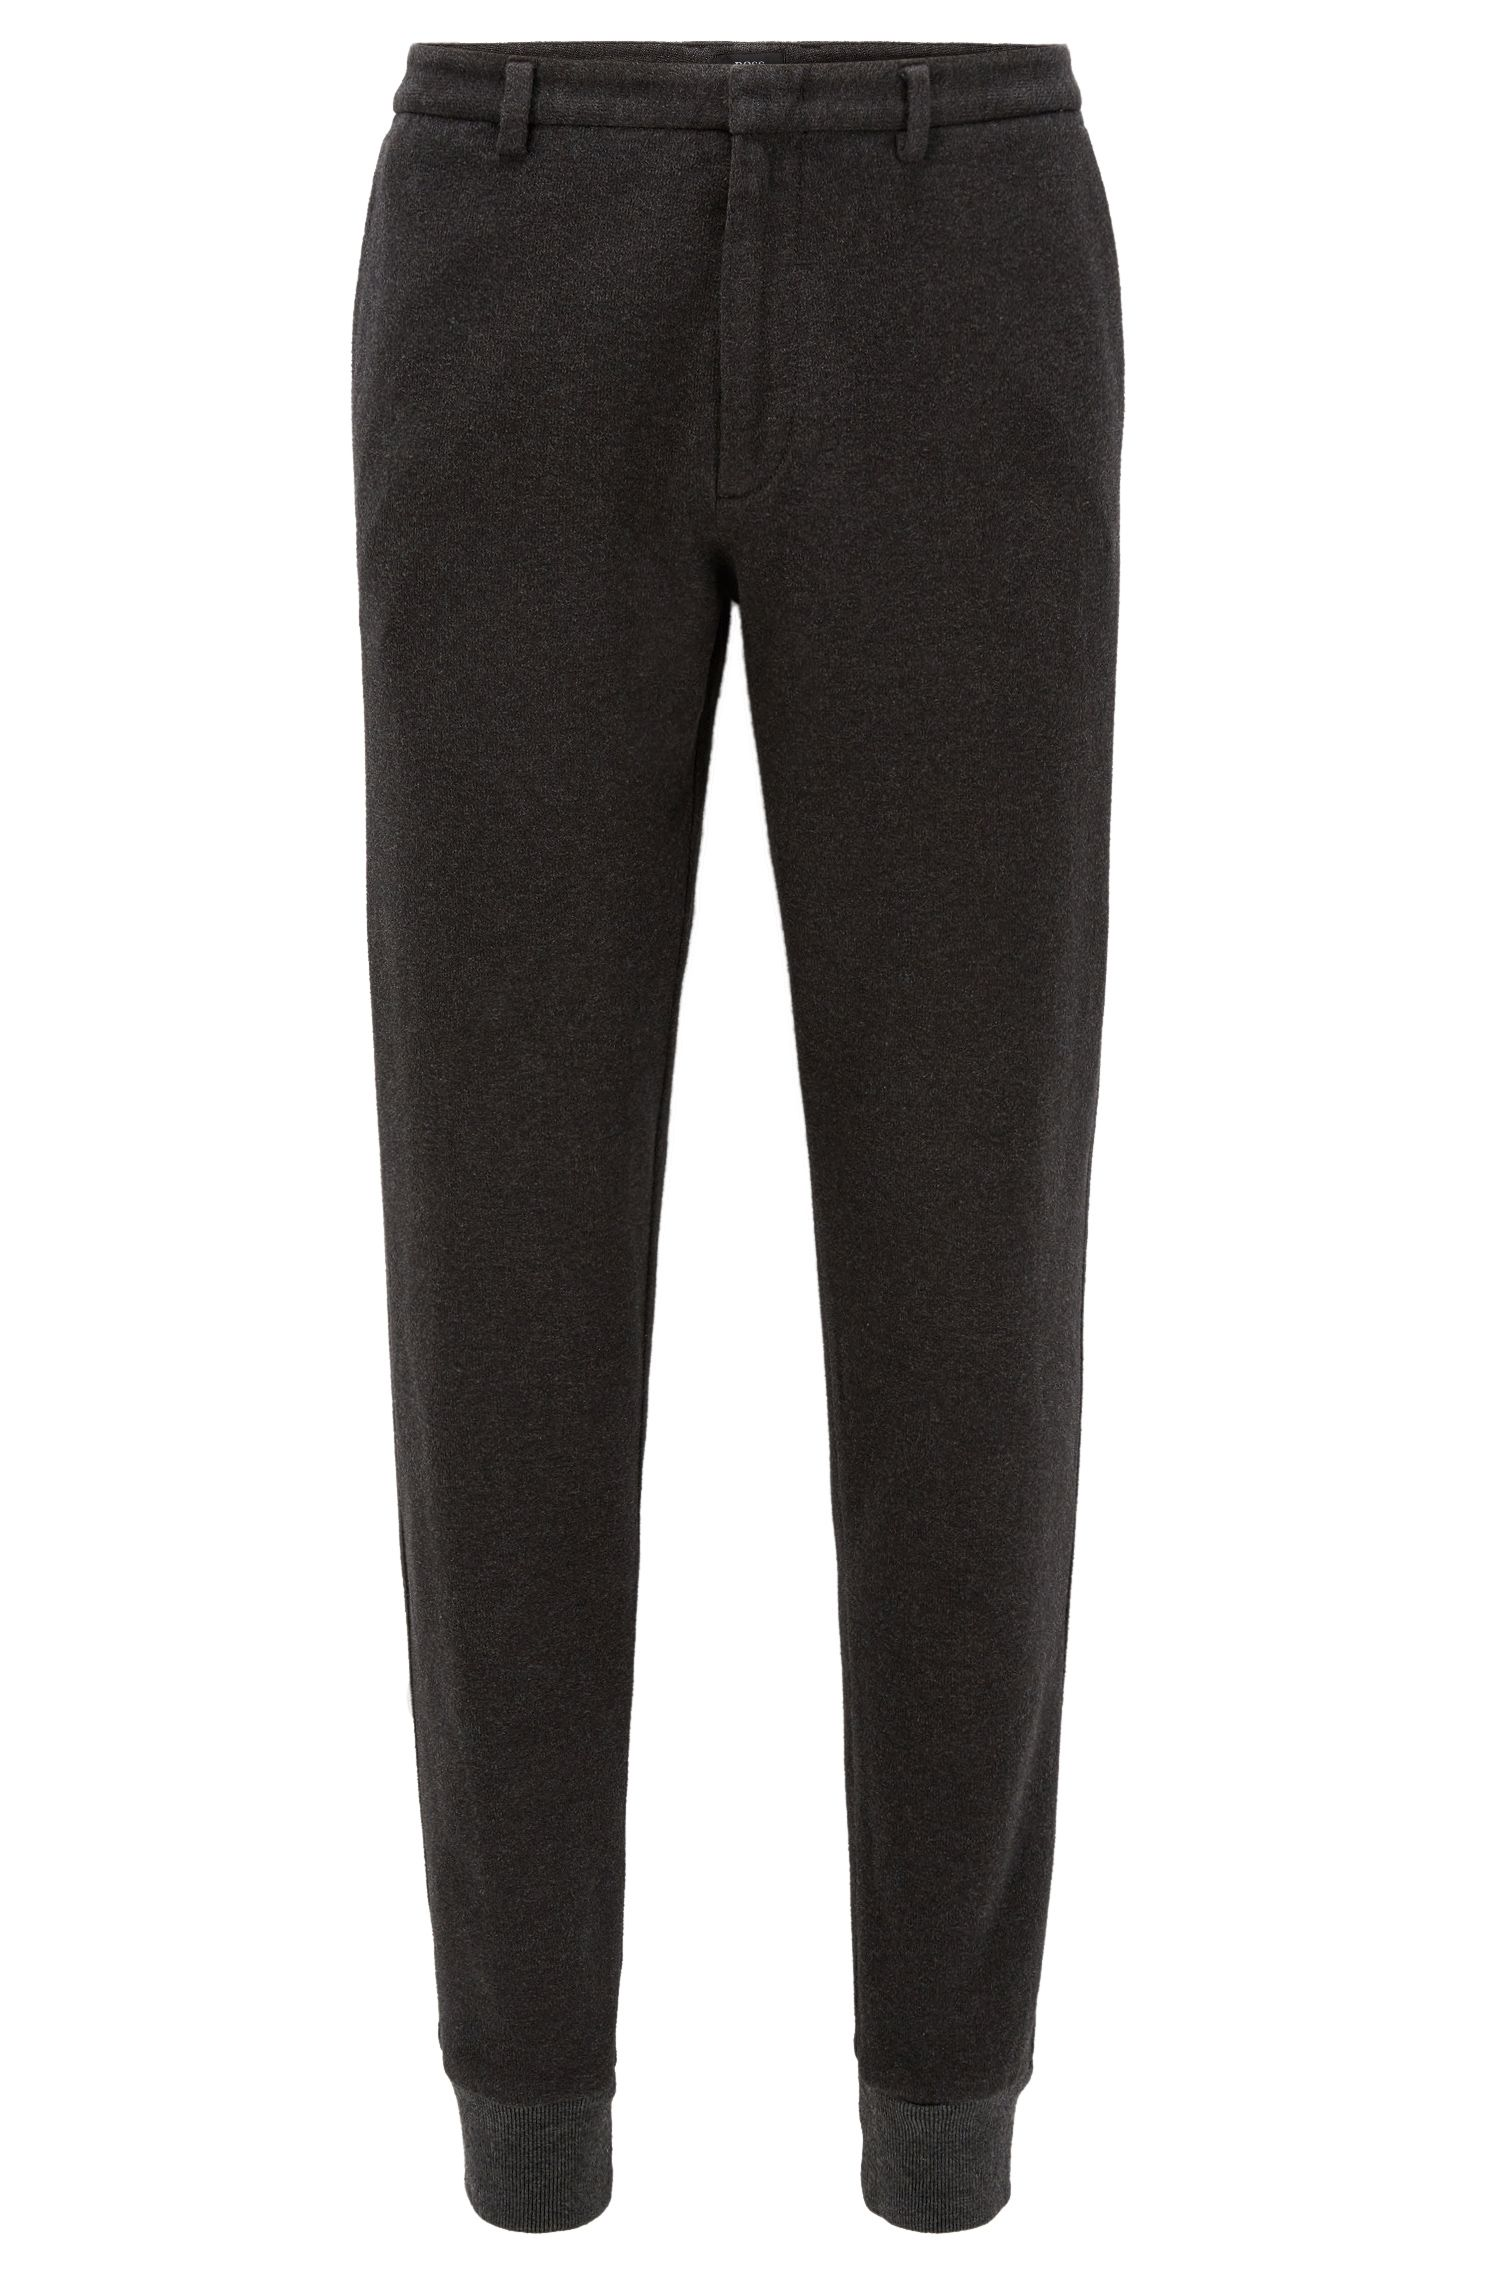 Slim-fit cuffed trousers in brushed cotton